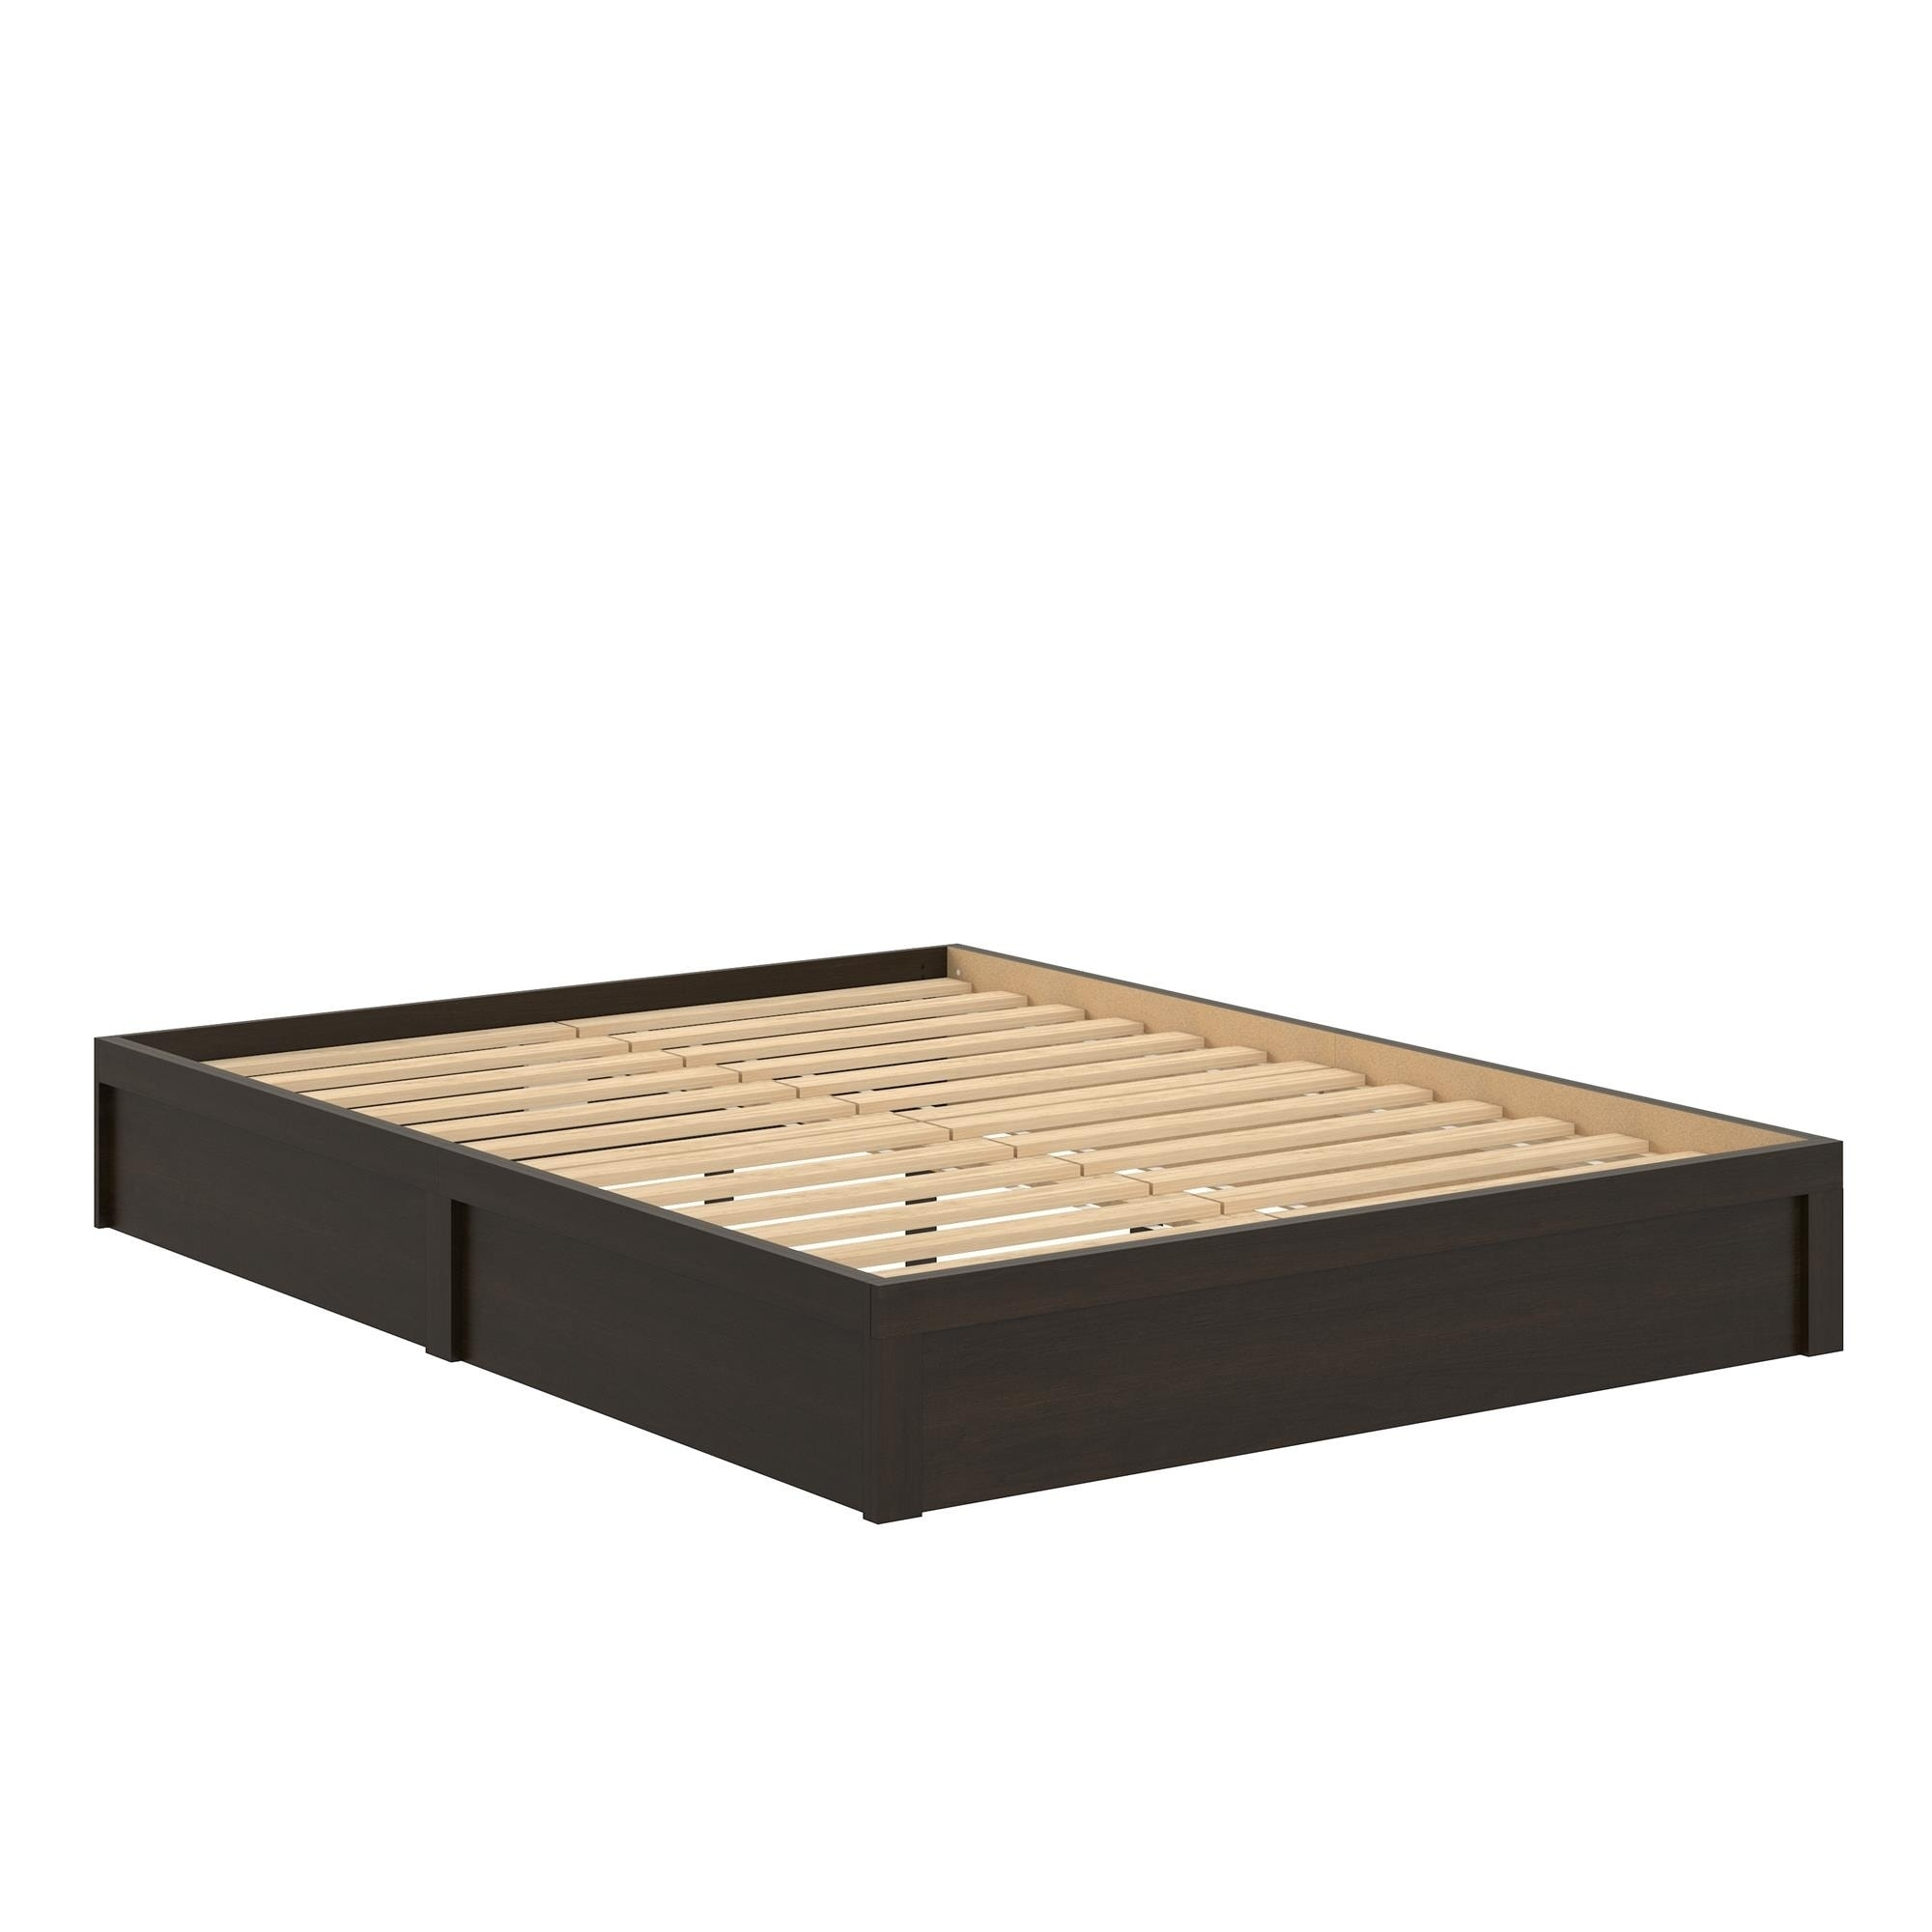 Shop Havenside Home Amelia Platform Full-size Bed Frame - On Sale ...